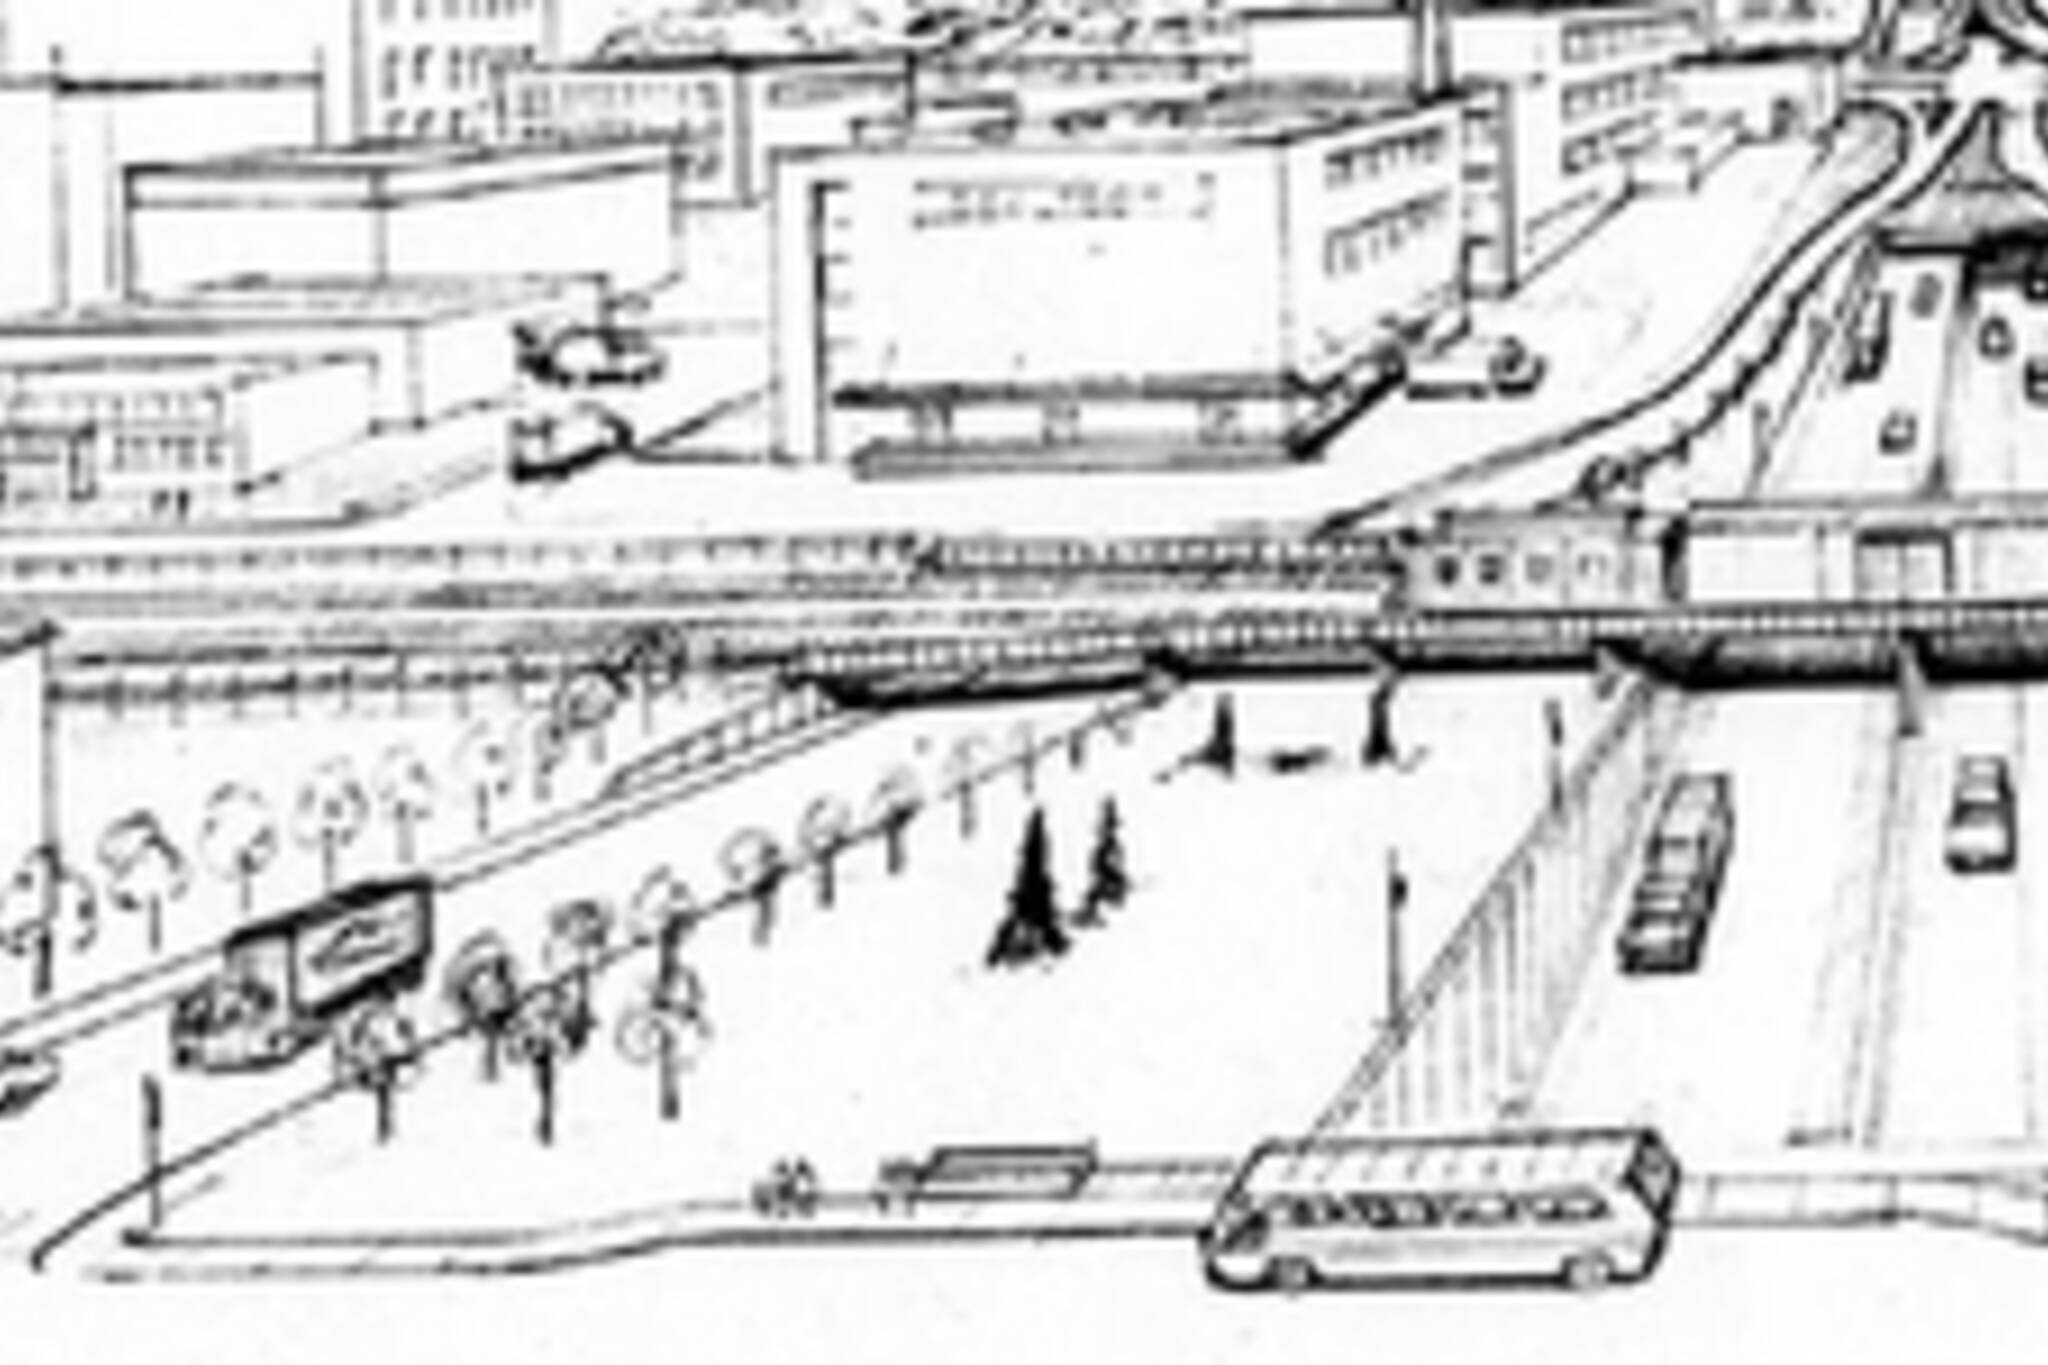 35 Years Without the Spadina Expressway